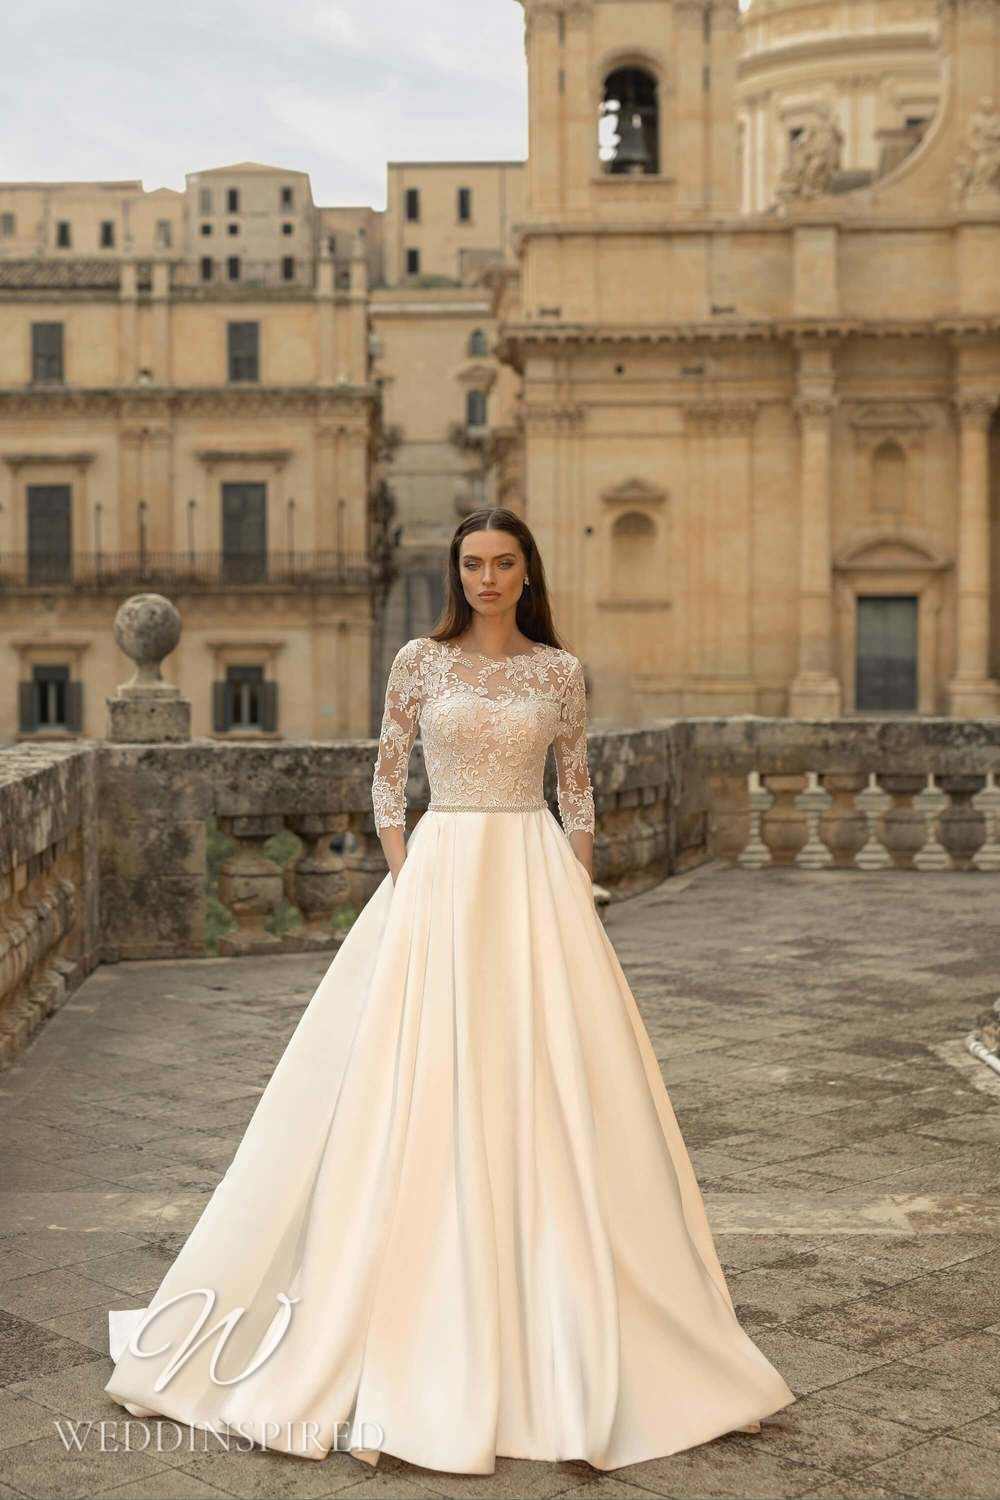 A Lussano 2021 ivory lace and satin A-line wedding dress with half sleeves